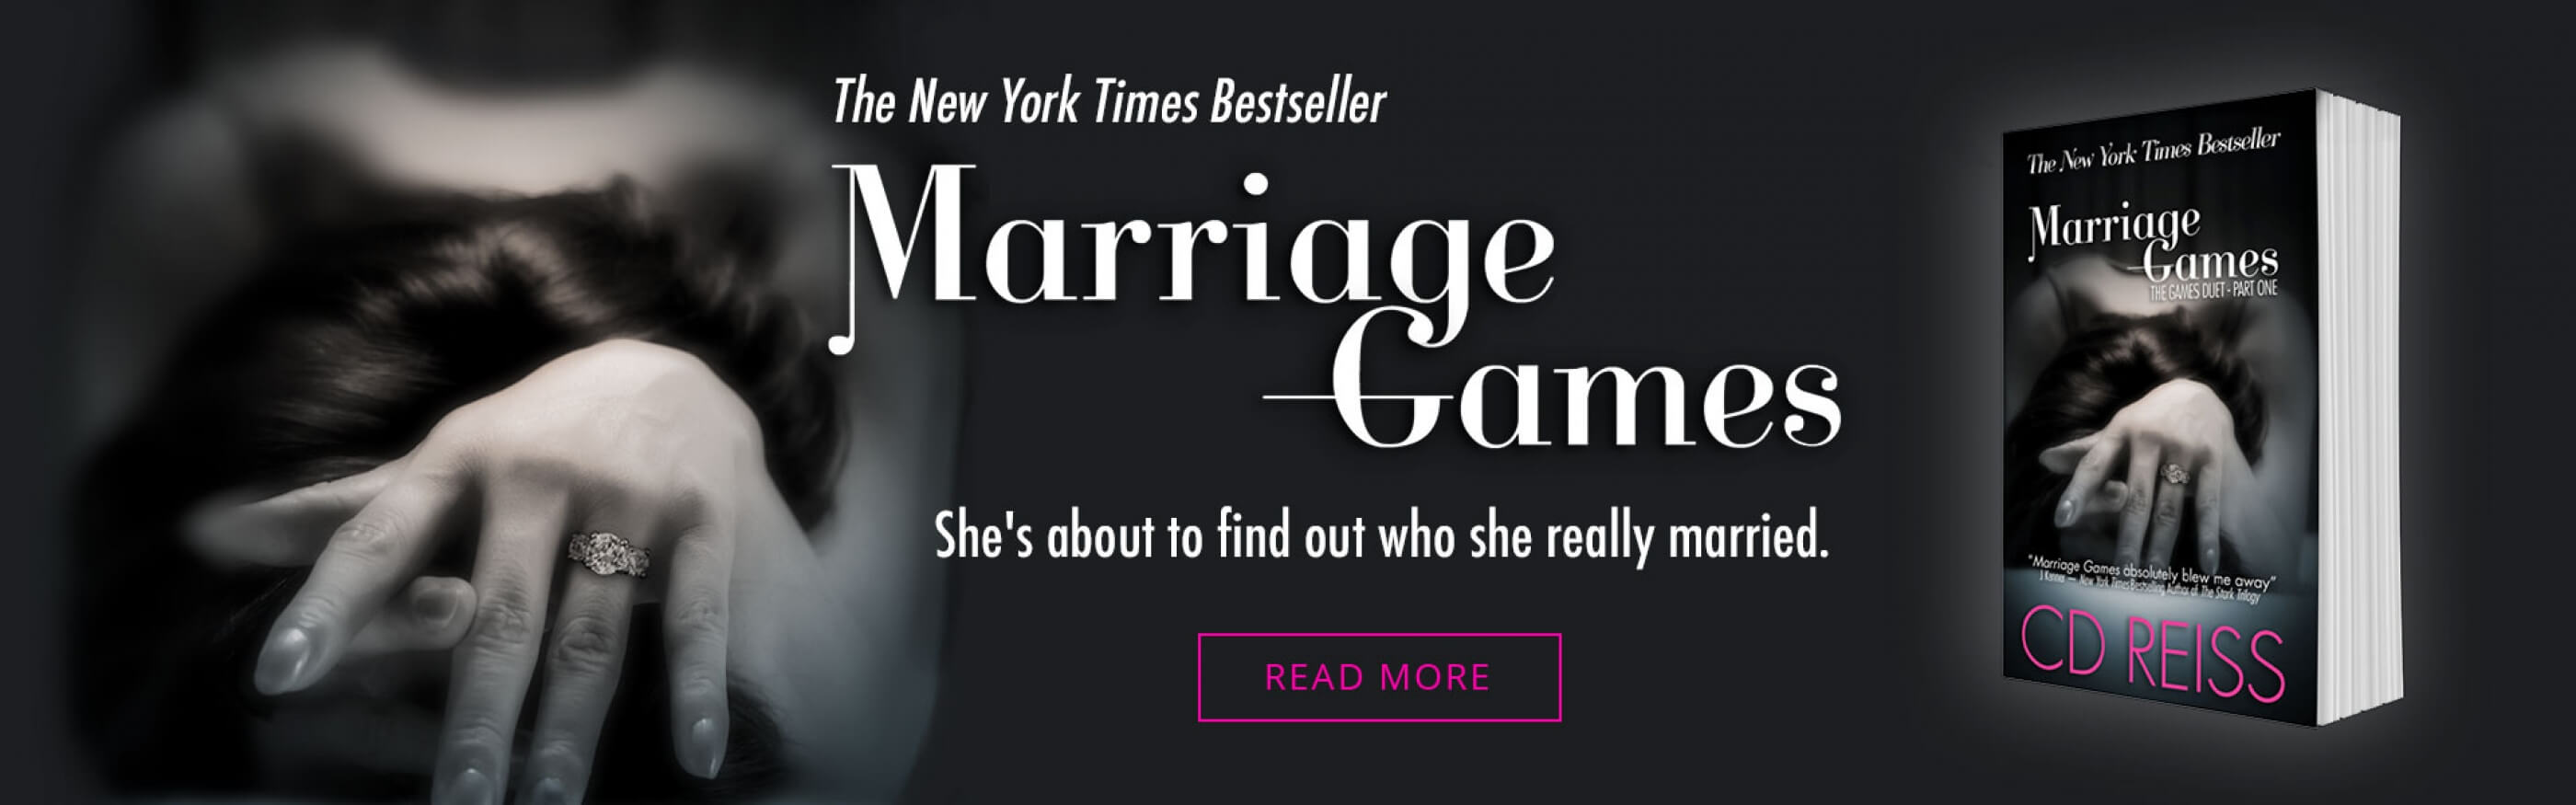 New York Times Bestseller Marriage Games by CD Reiss